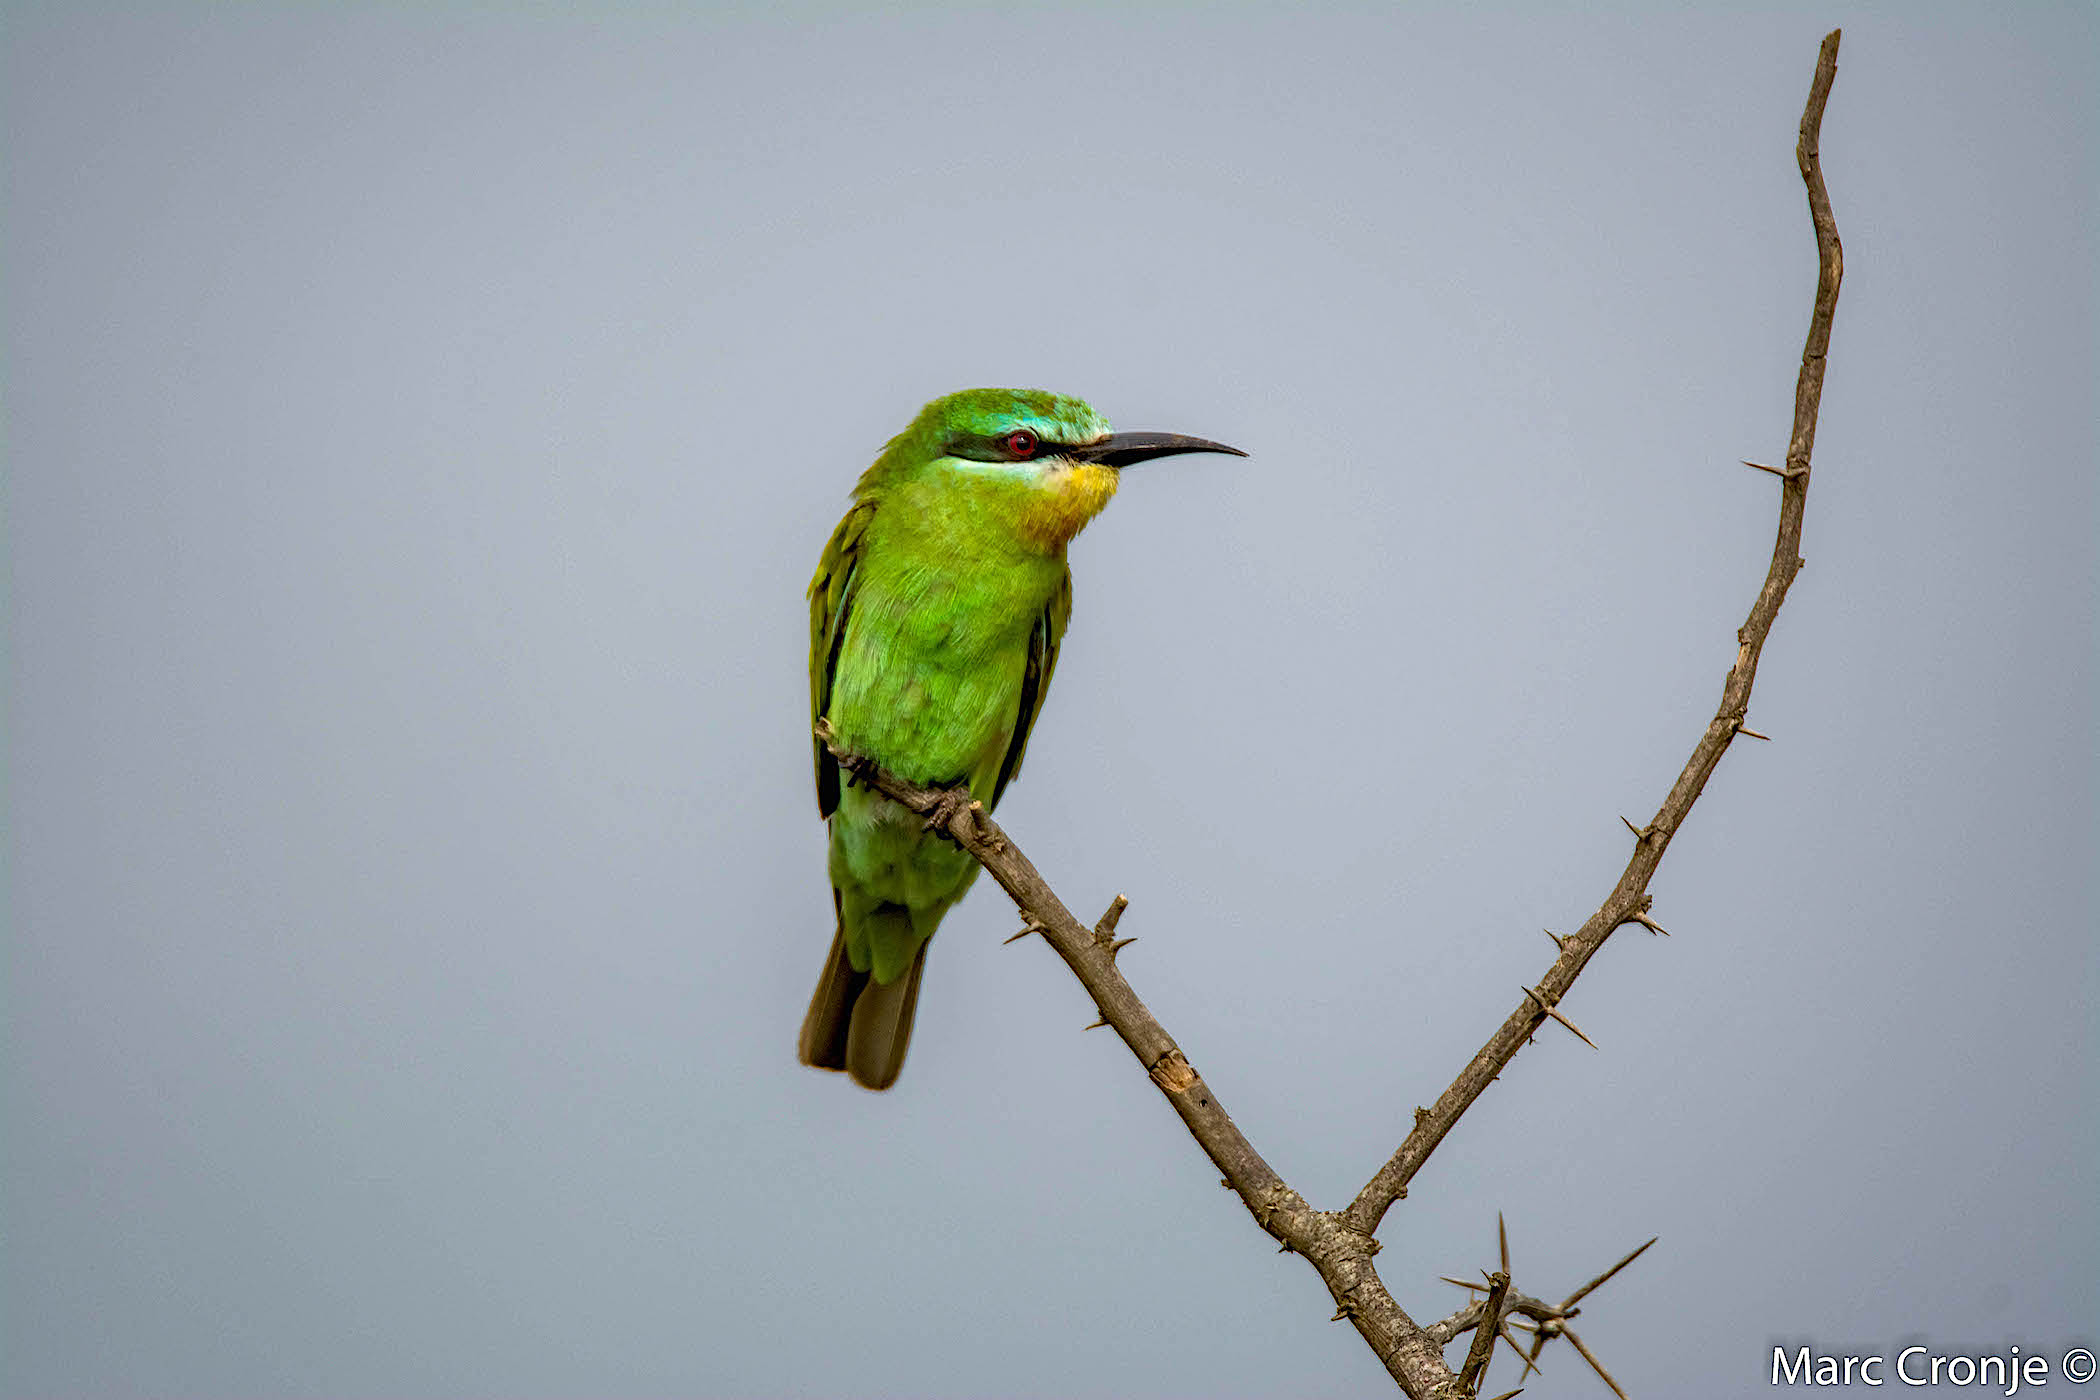 DAY 13: MTUNZINI, BLUE CHEEKED BEE EATER